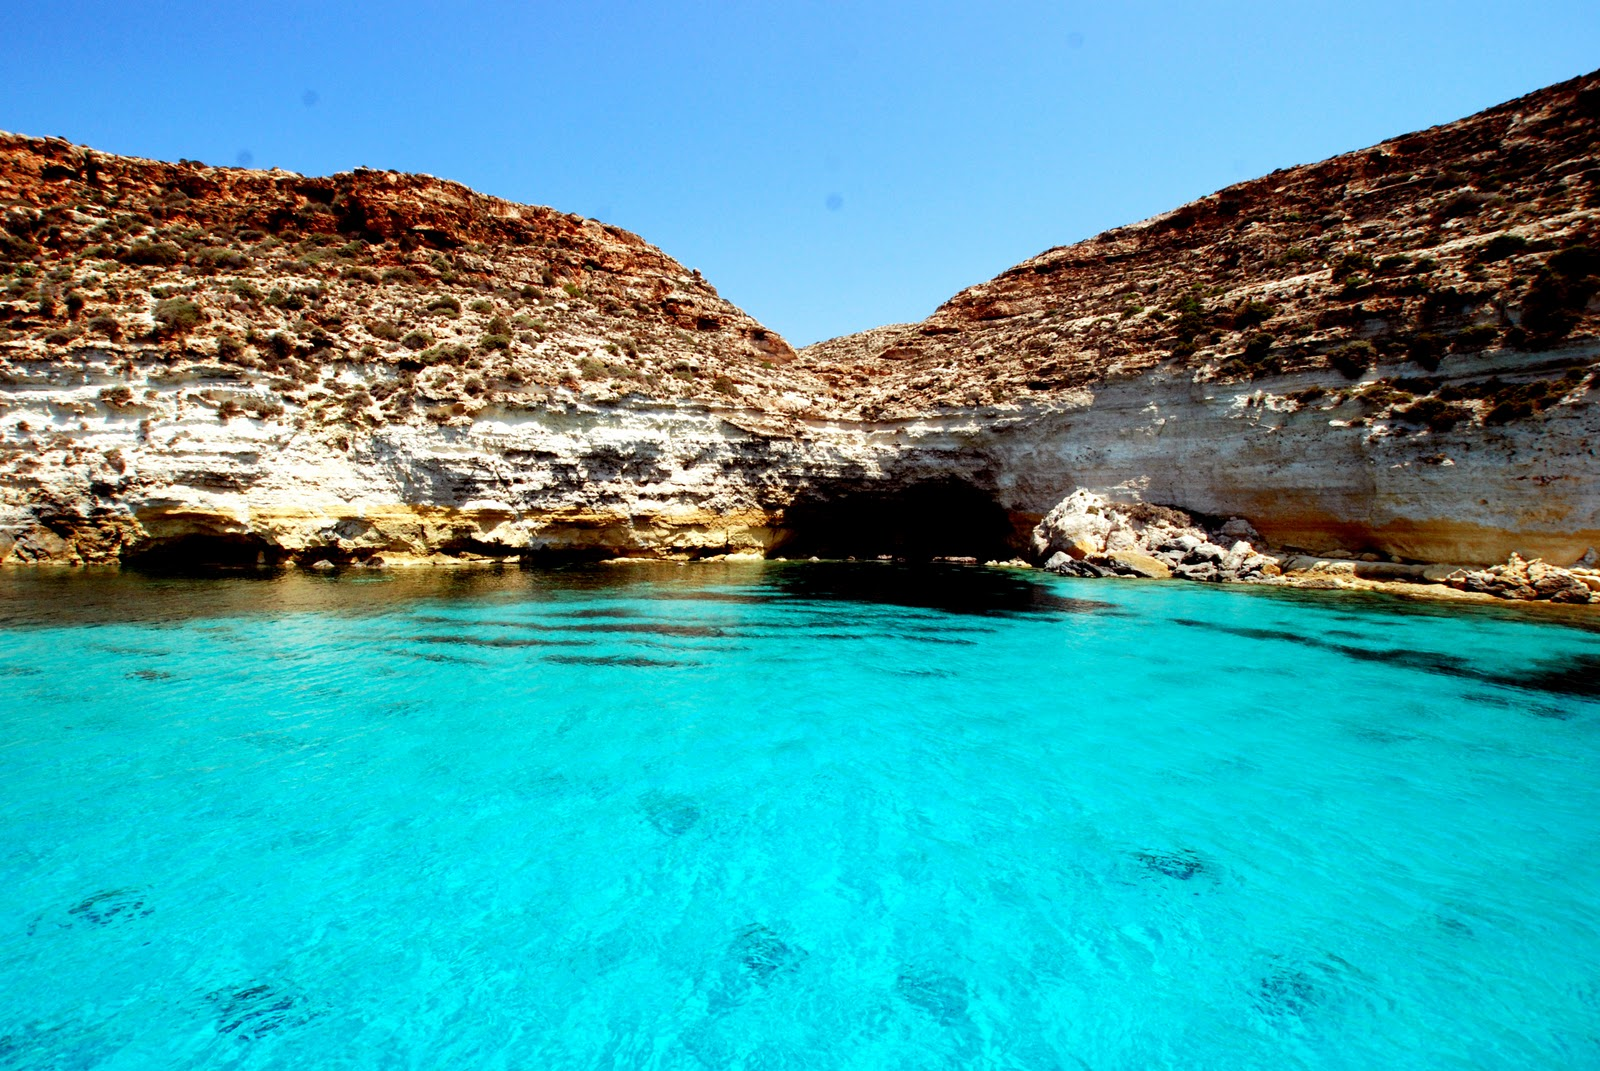 PHOTO: Lampedusa - La tabaccara